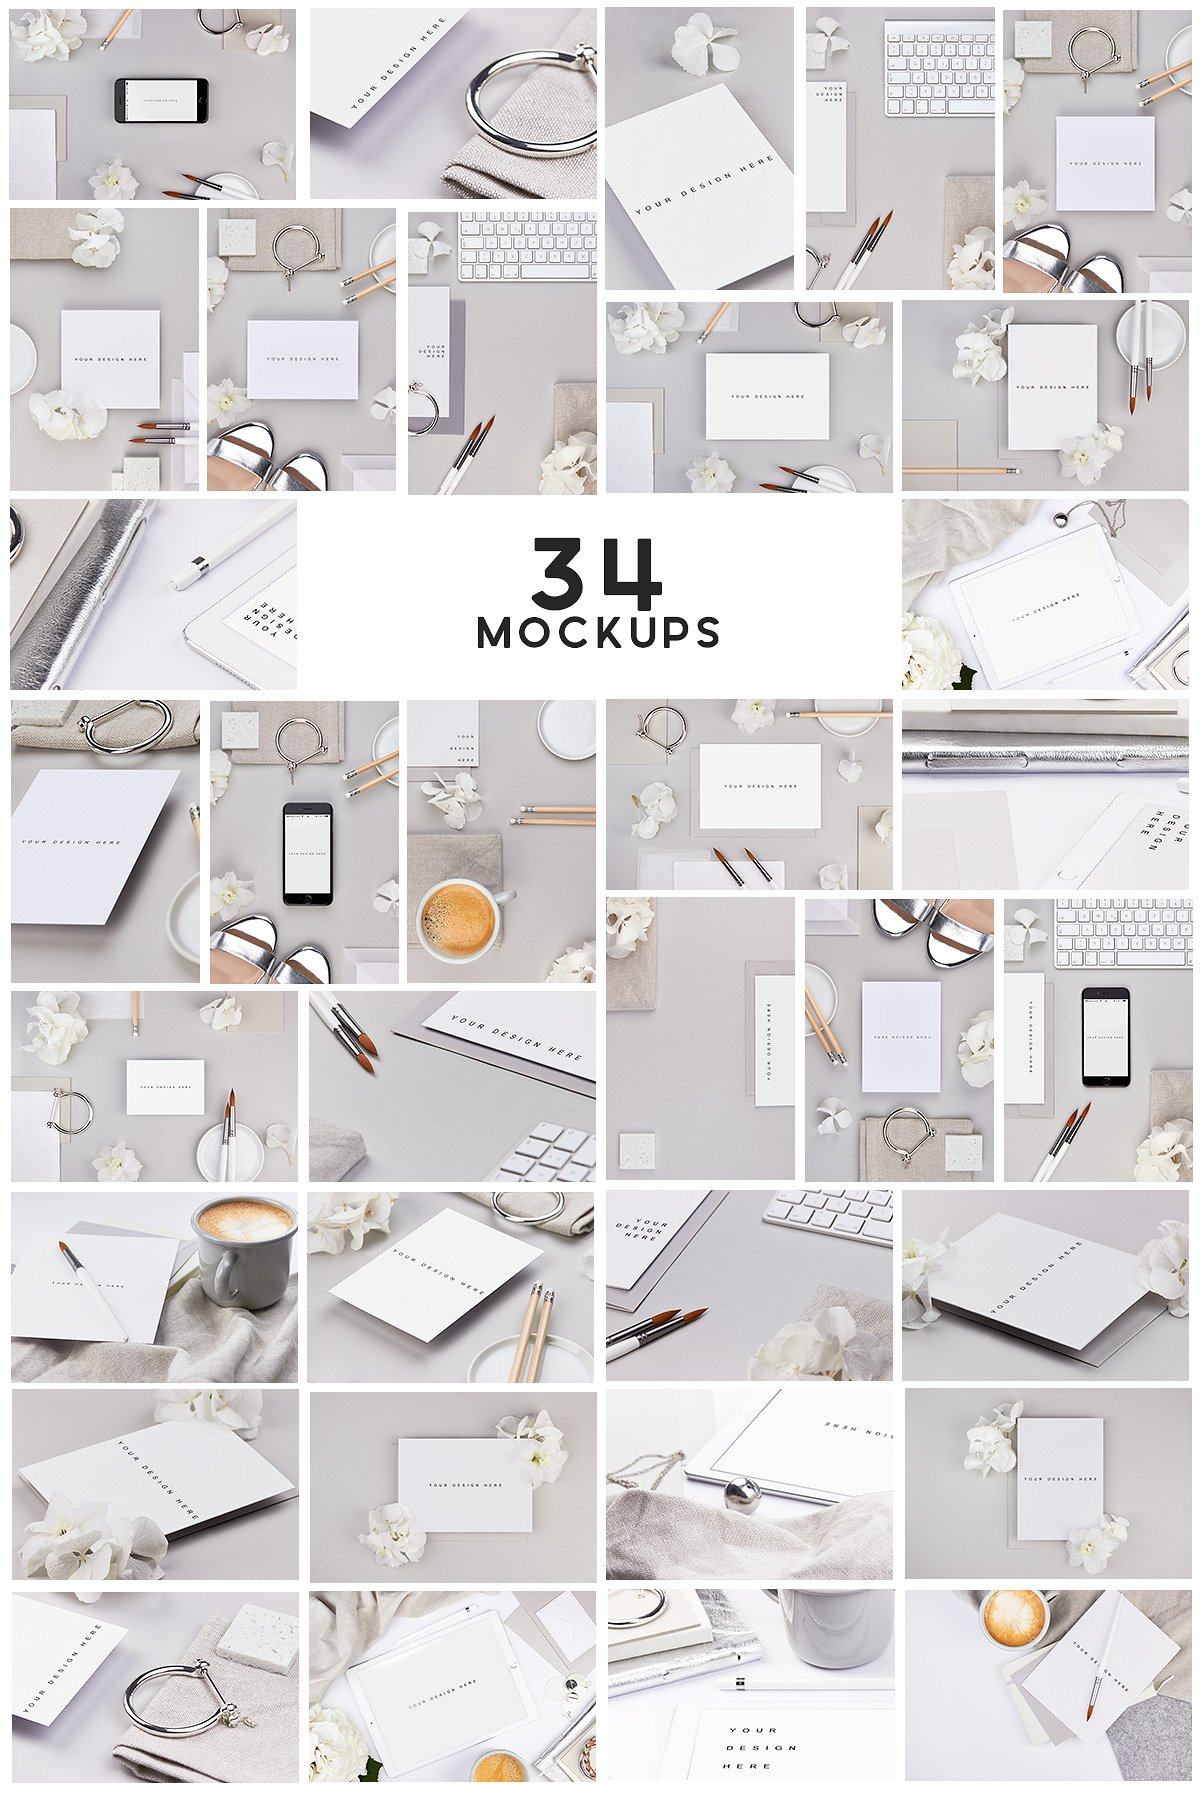 02-bundle-stock-image-mockup-collection-social-media-fashion-blogger-light-grey-sophisticated-white-silver-